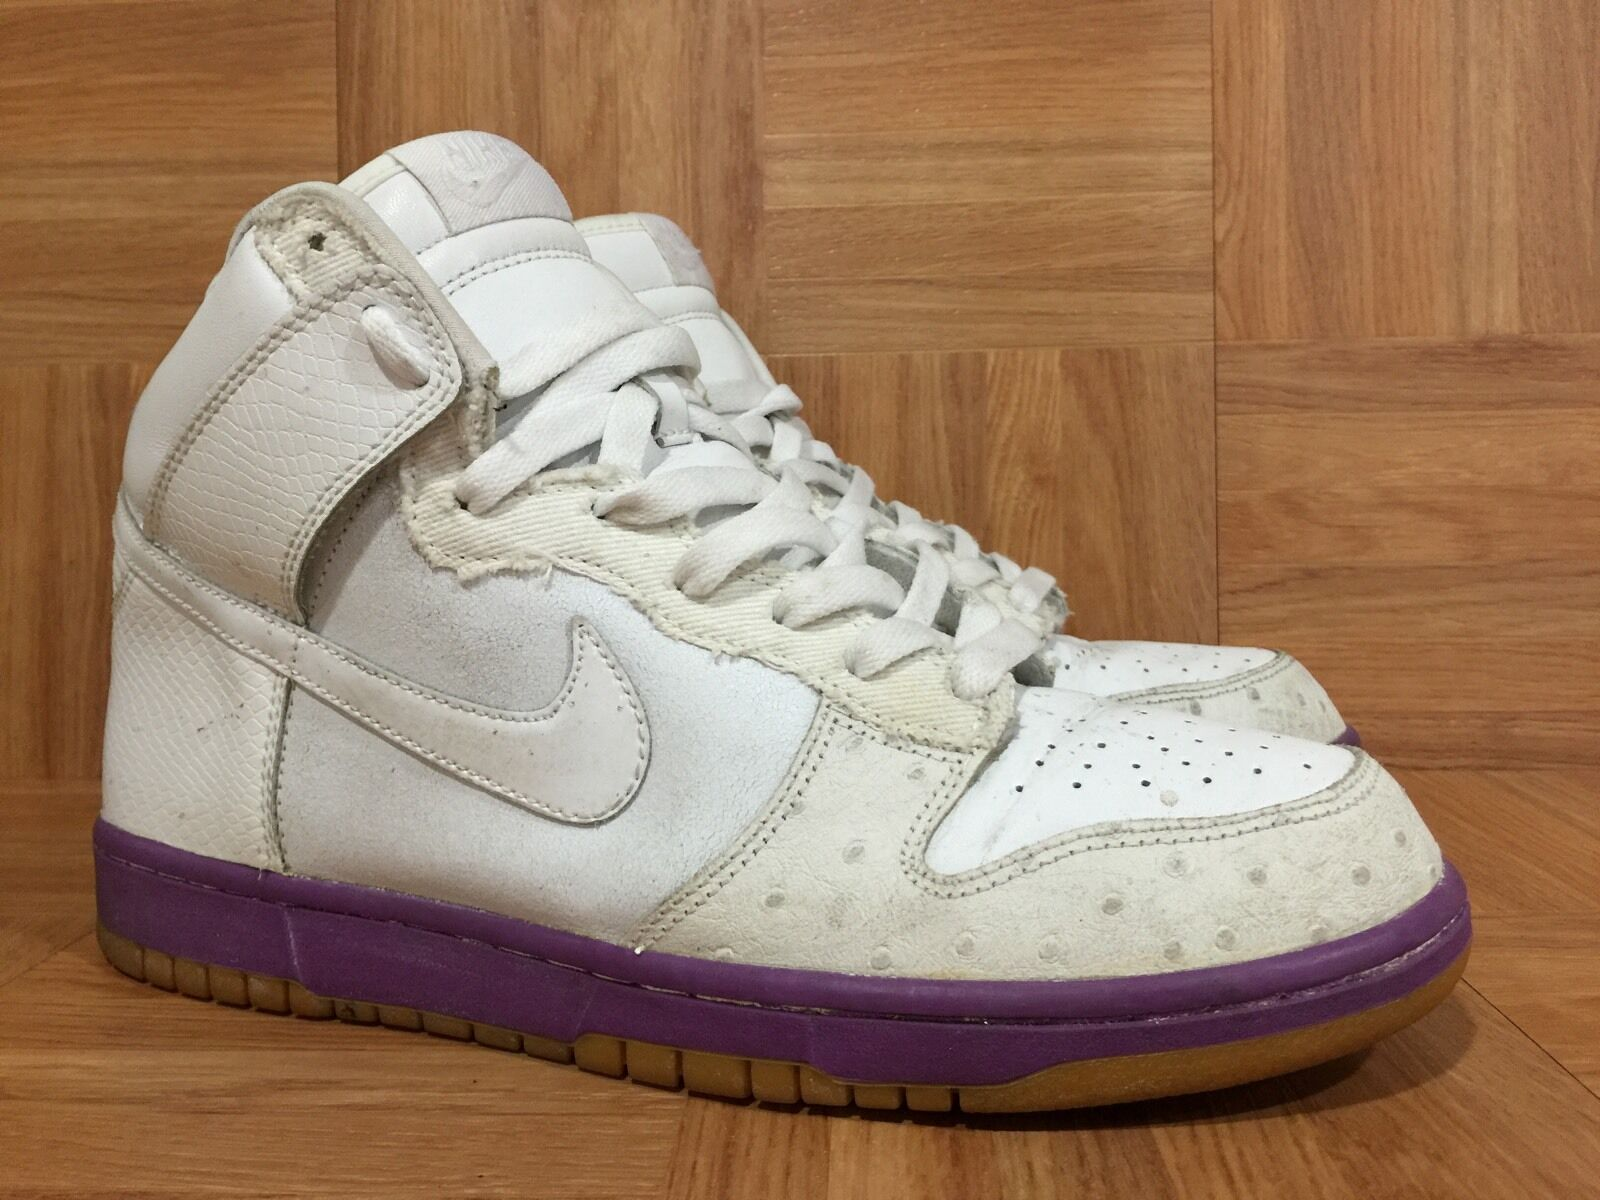 RARE Nike Dunk High Deluxe White Ostrich Hyacinth Purple Gum Sz 9.5 312032-111